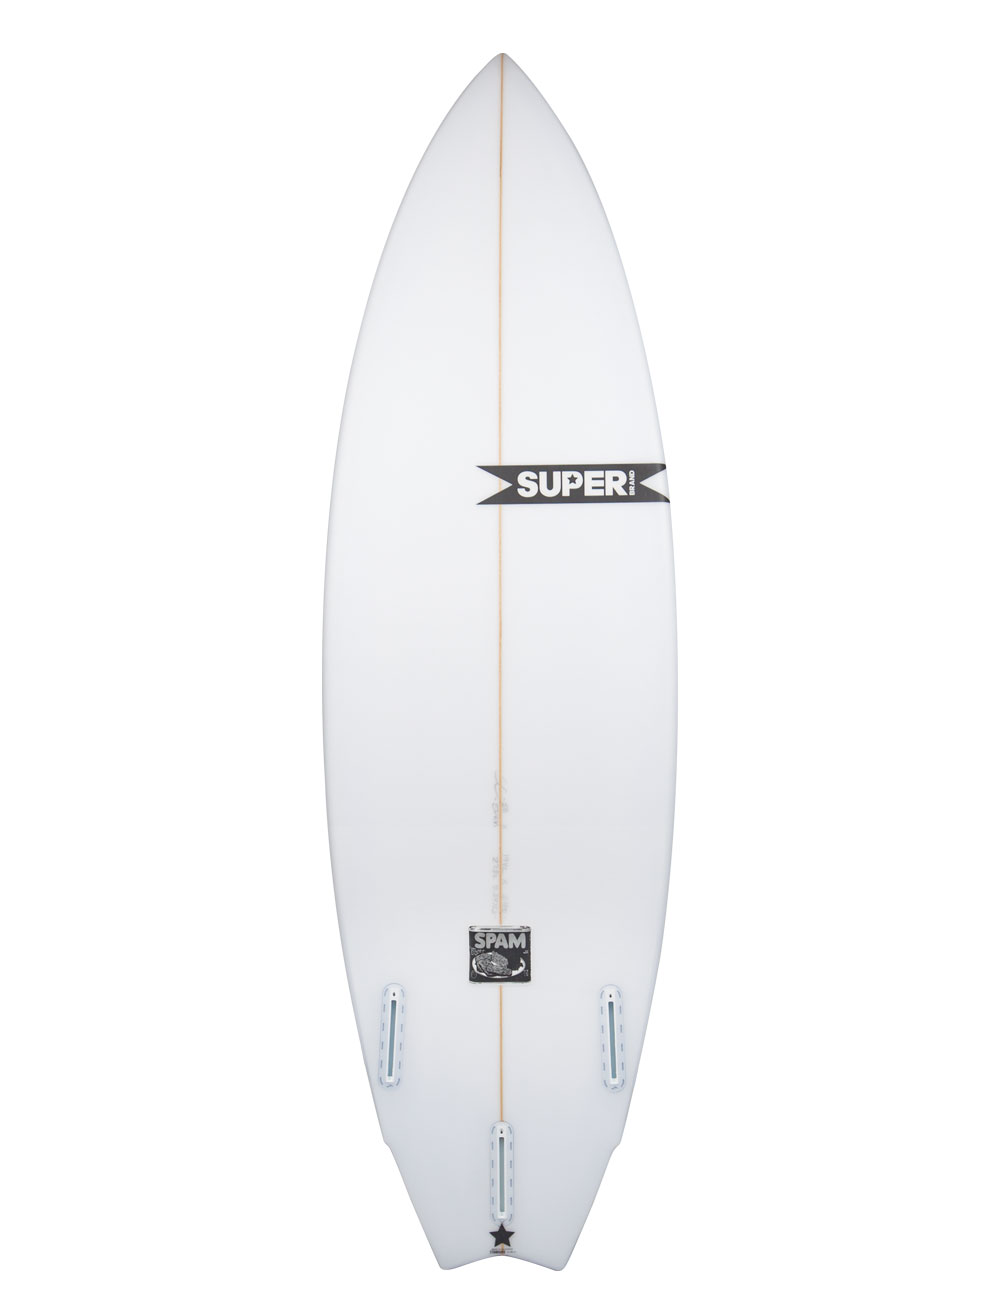 Spam_Surfboard1.jpg